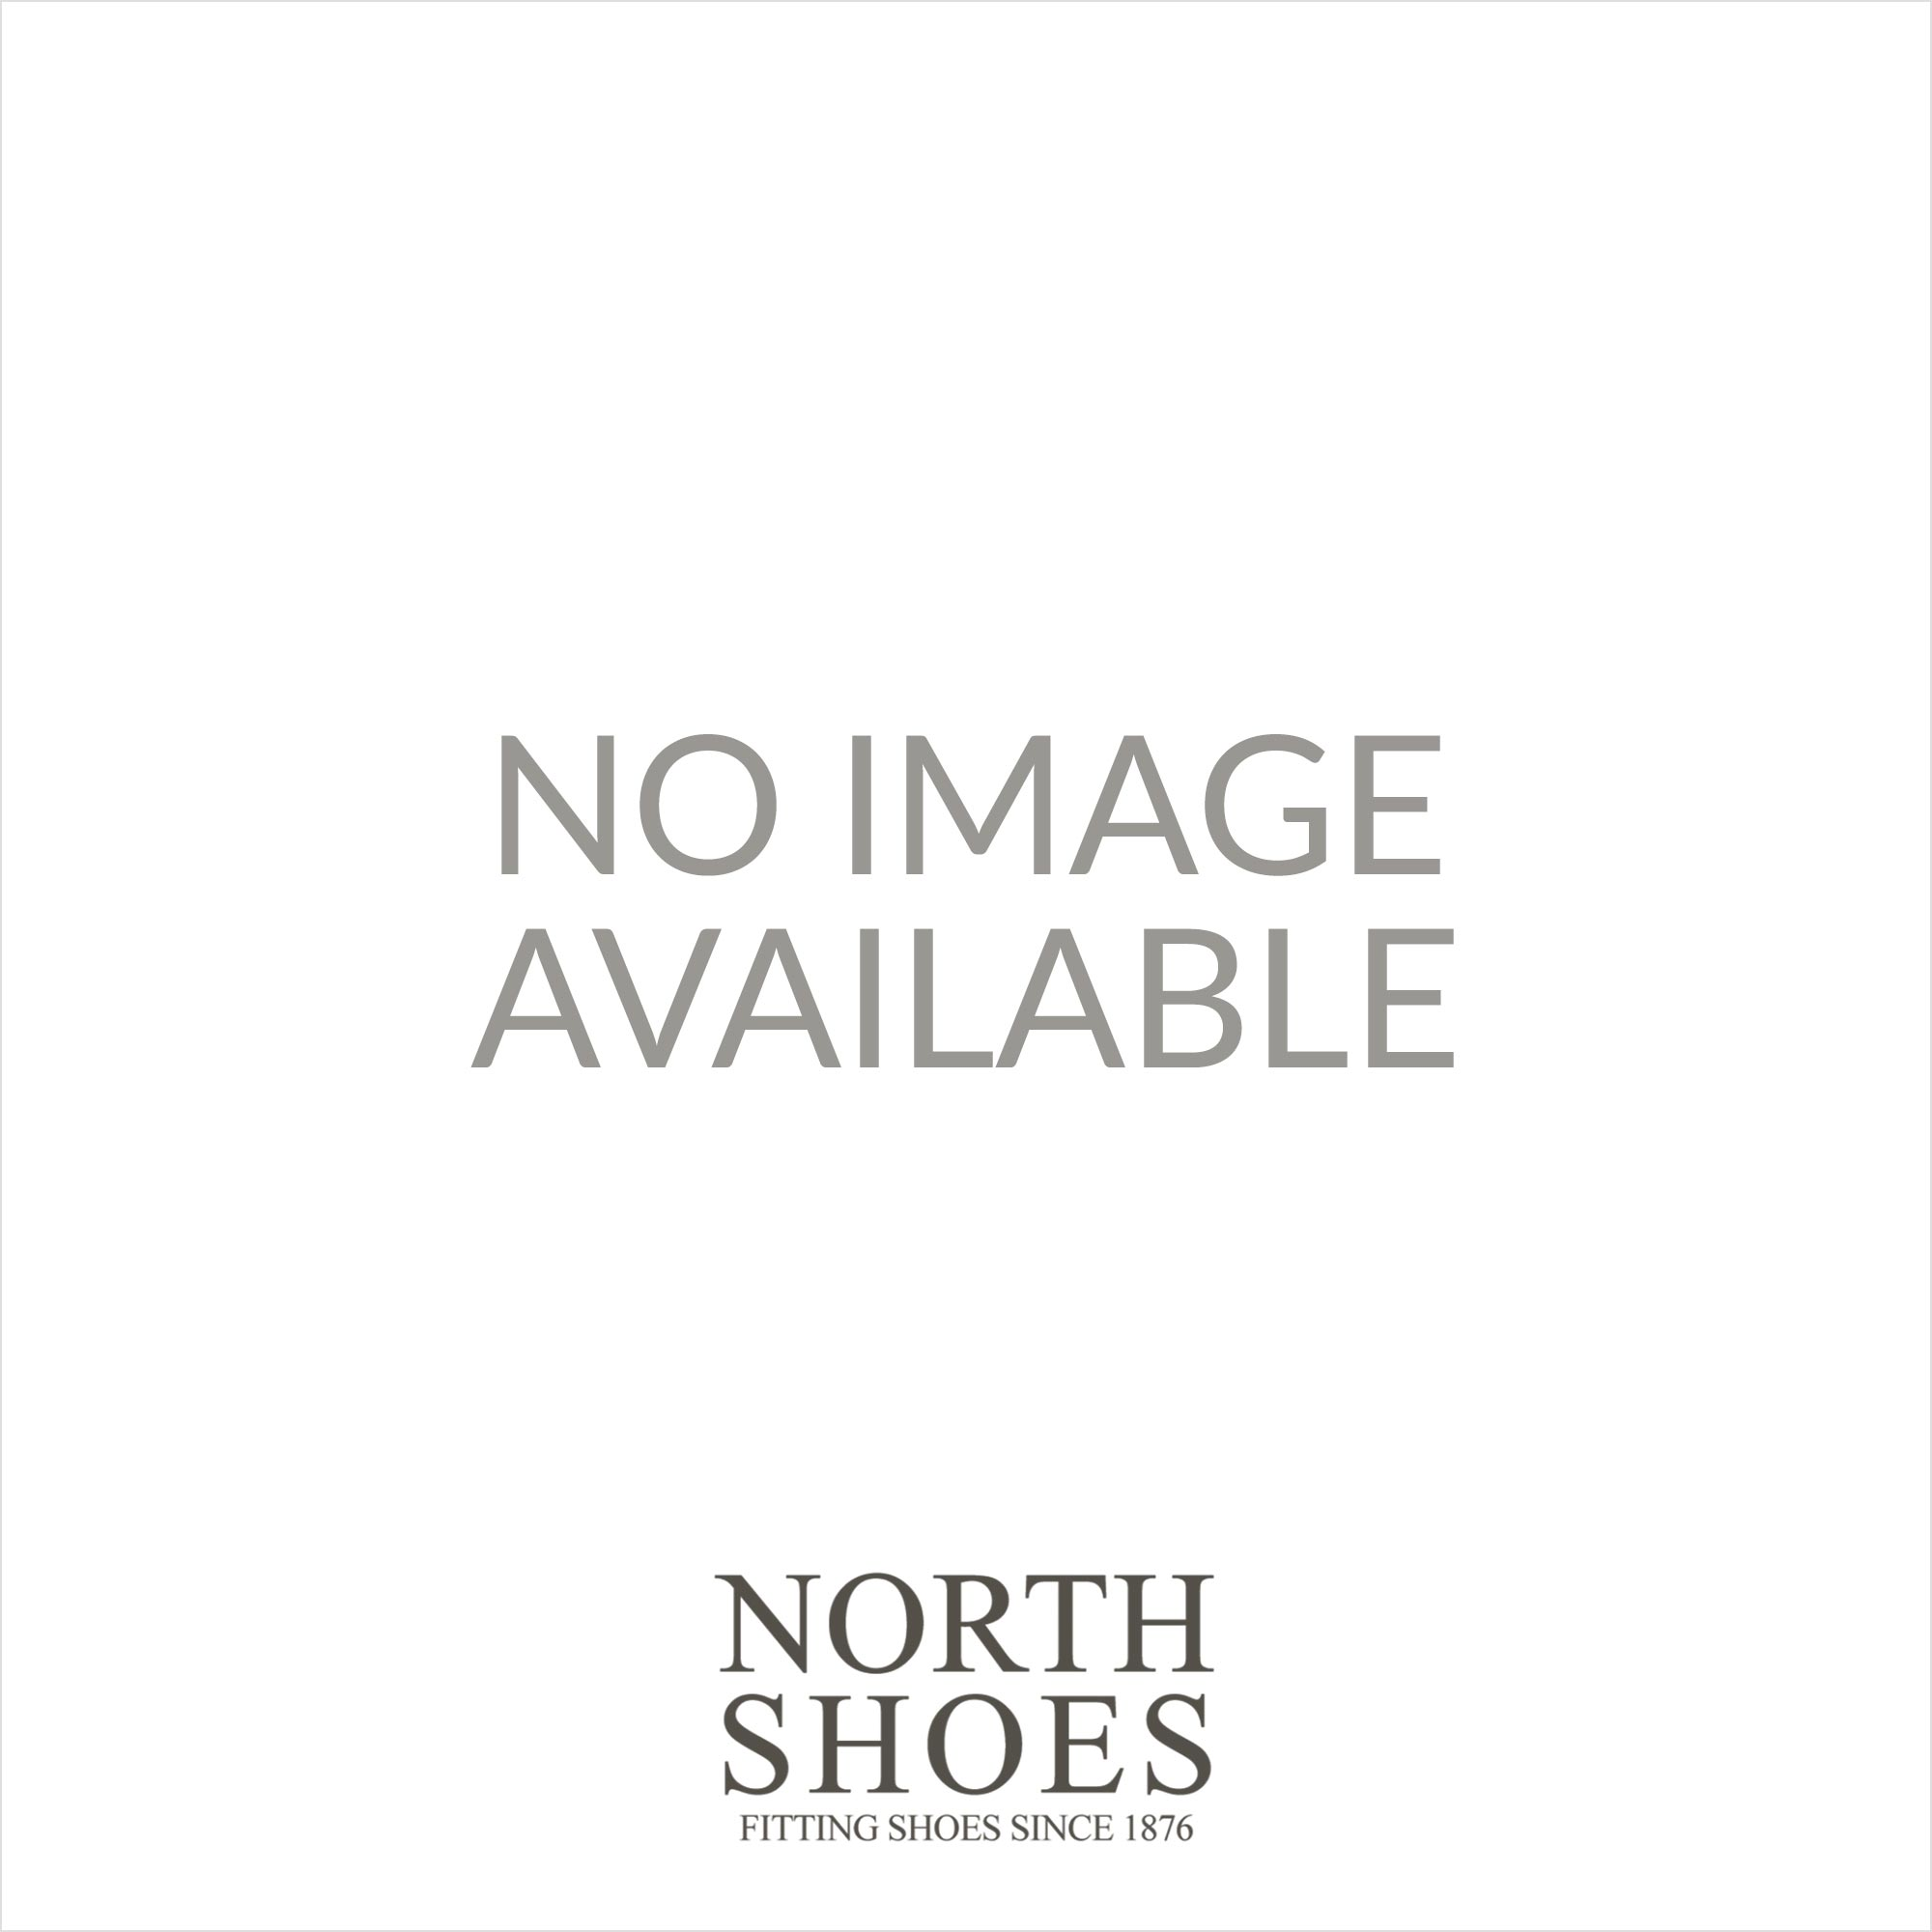 ca7d1f3a5c6 ... Converse Chuck Taylor All Star Ox 66045C Rose Gold Glitter Girls Lace  Up Shoe ...